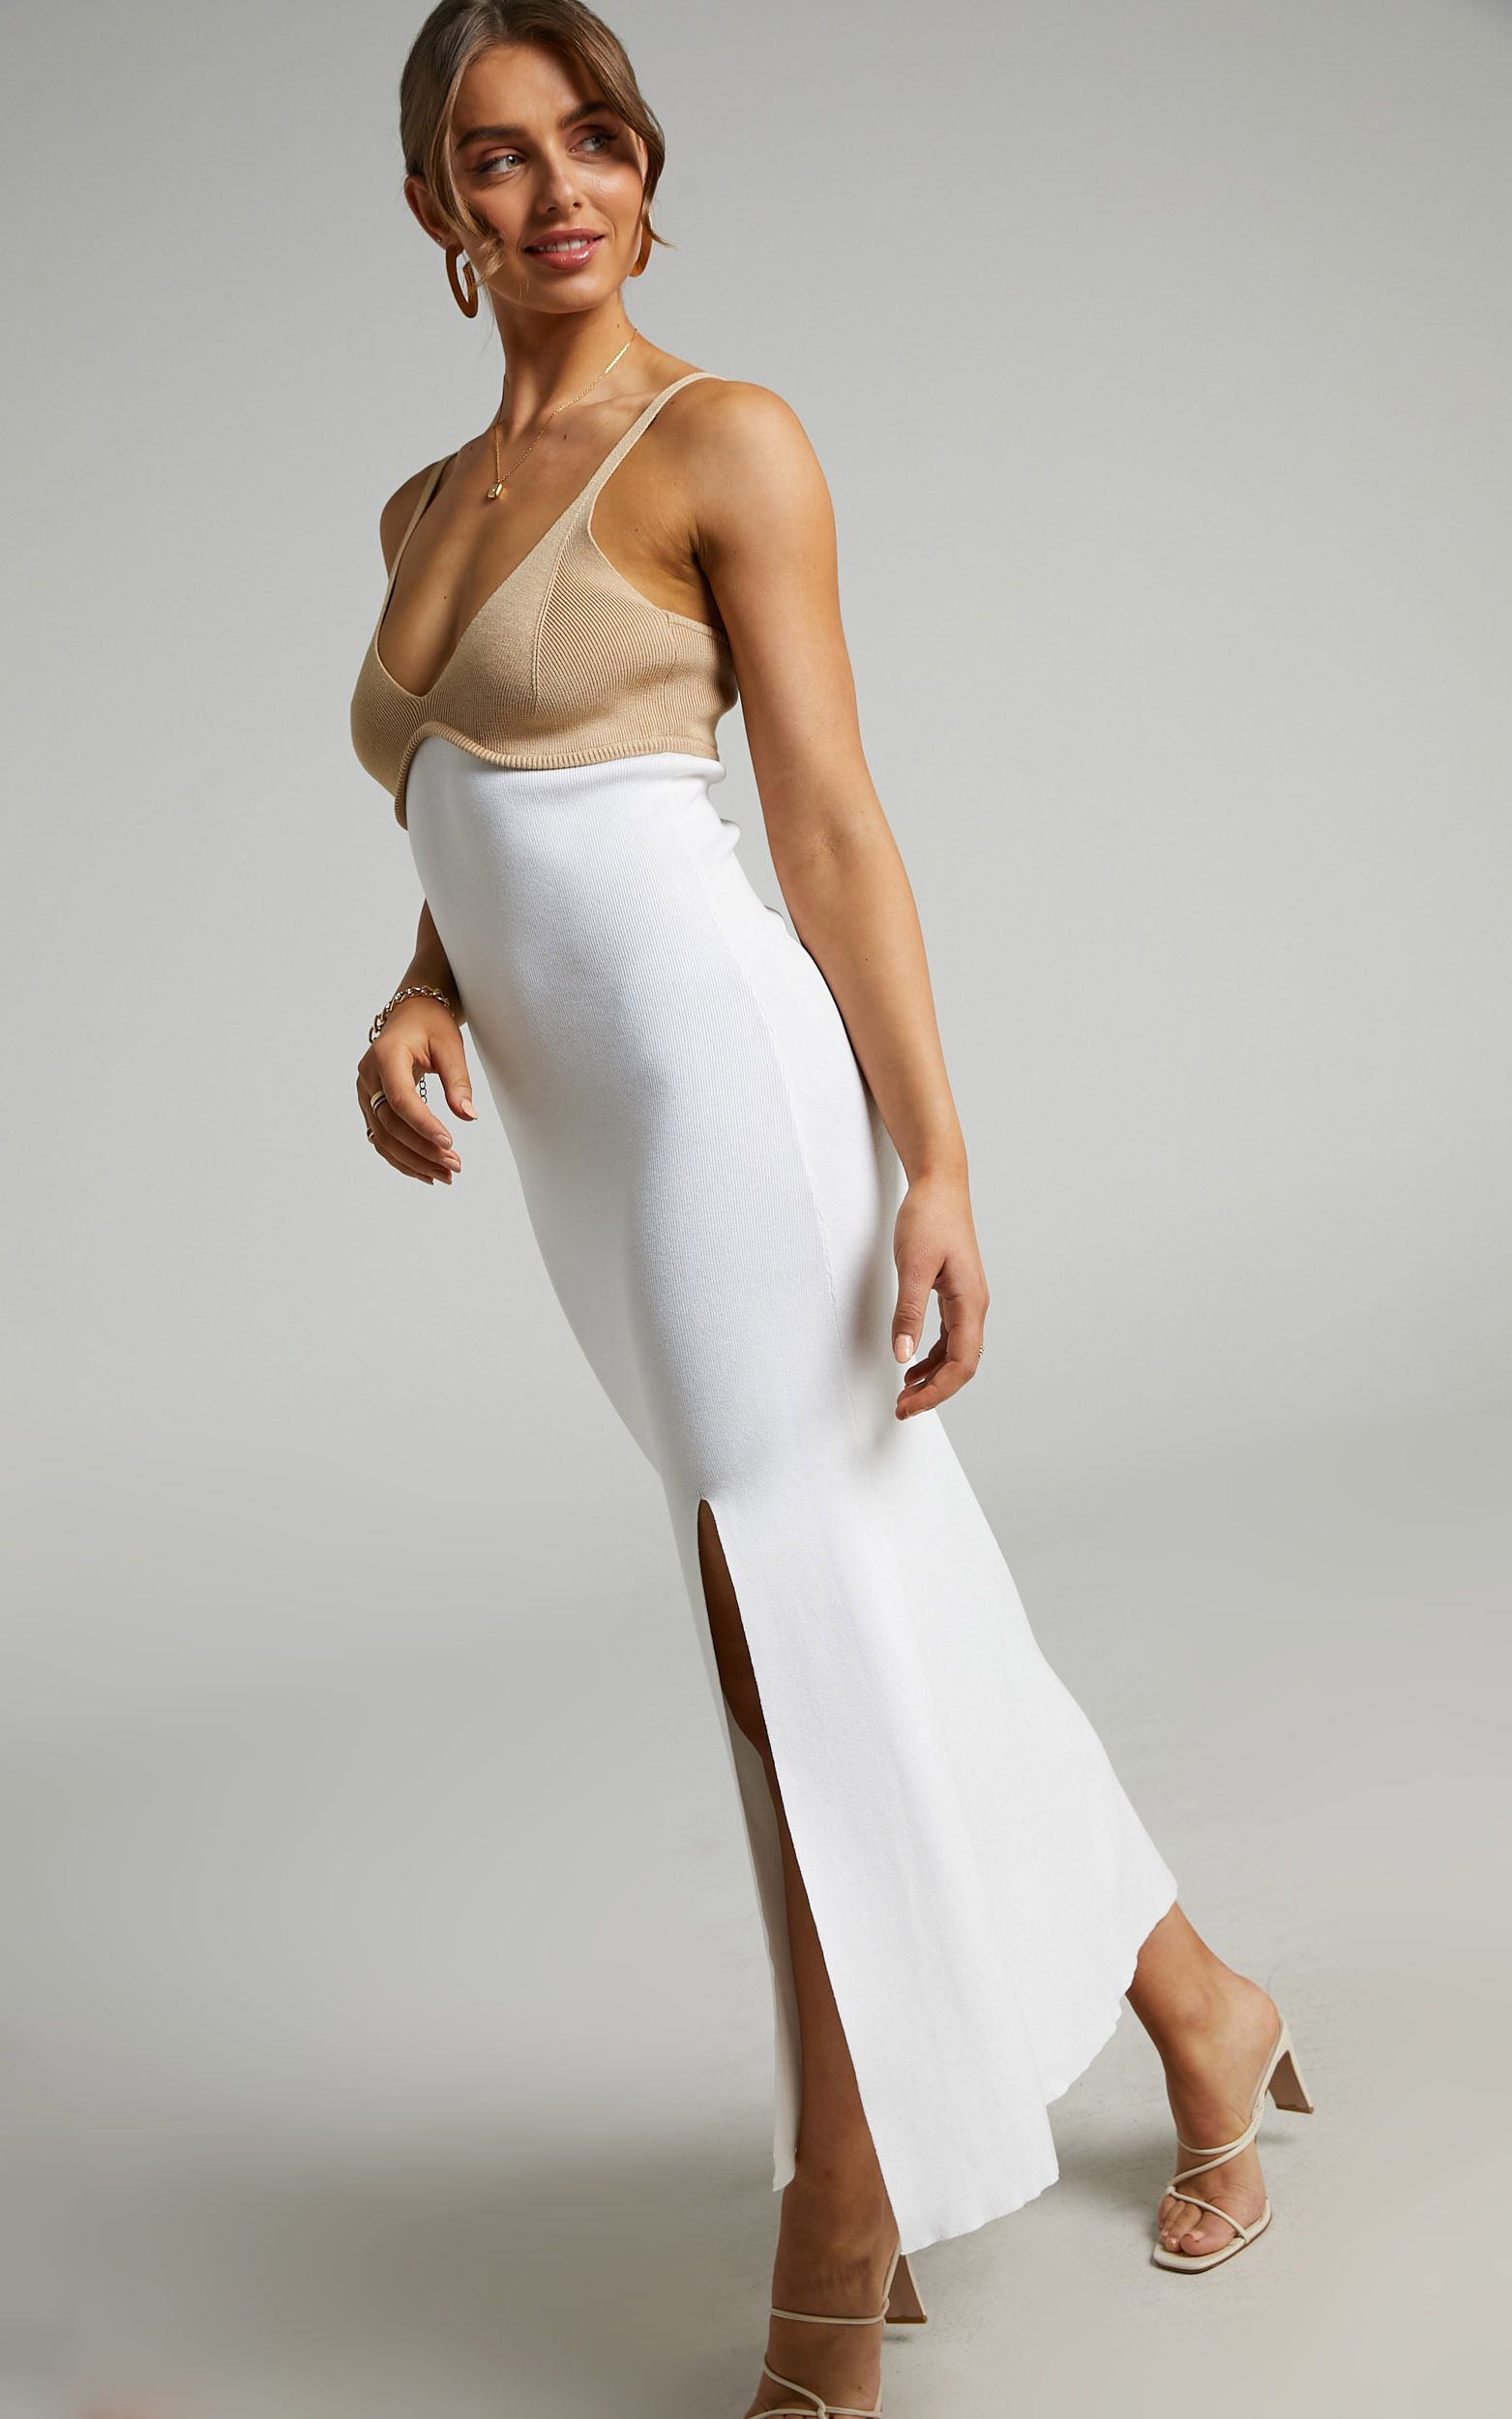 Claire Dual Tone Knit Dress in White & Beige - 06, WHT1, hi-res image number null